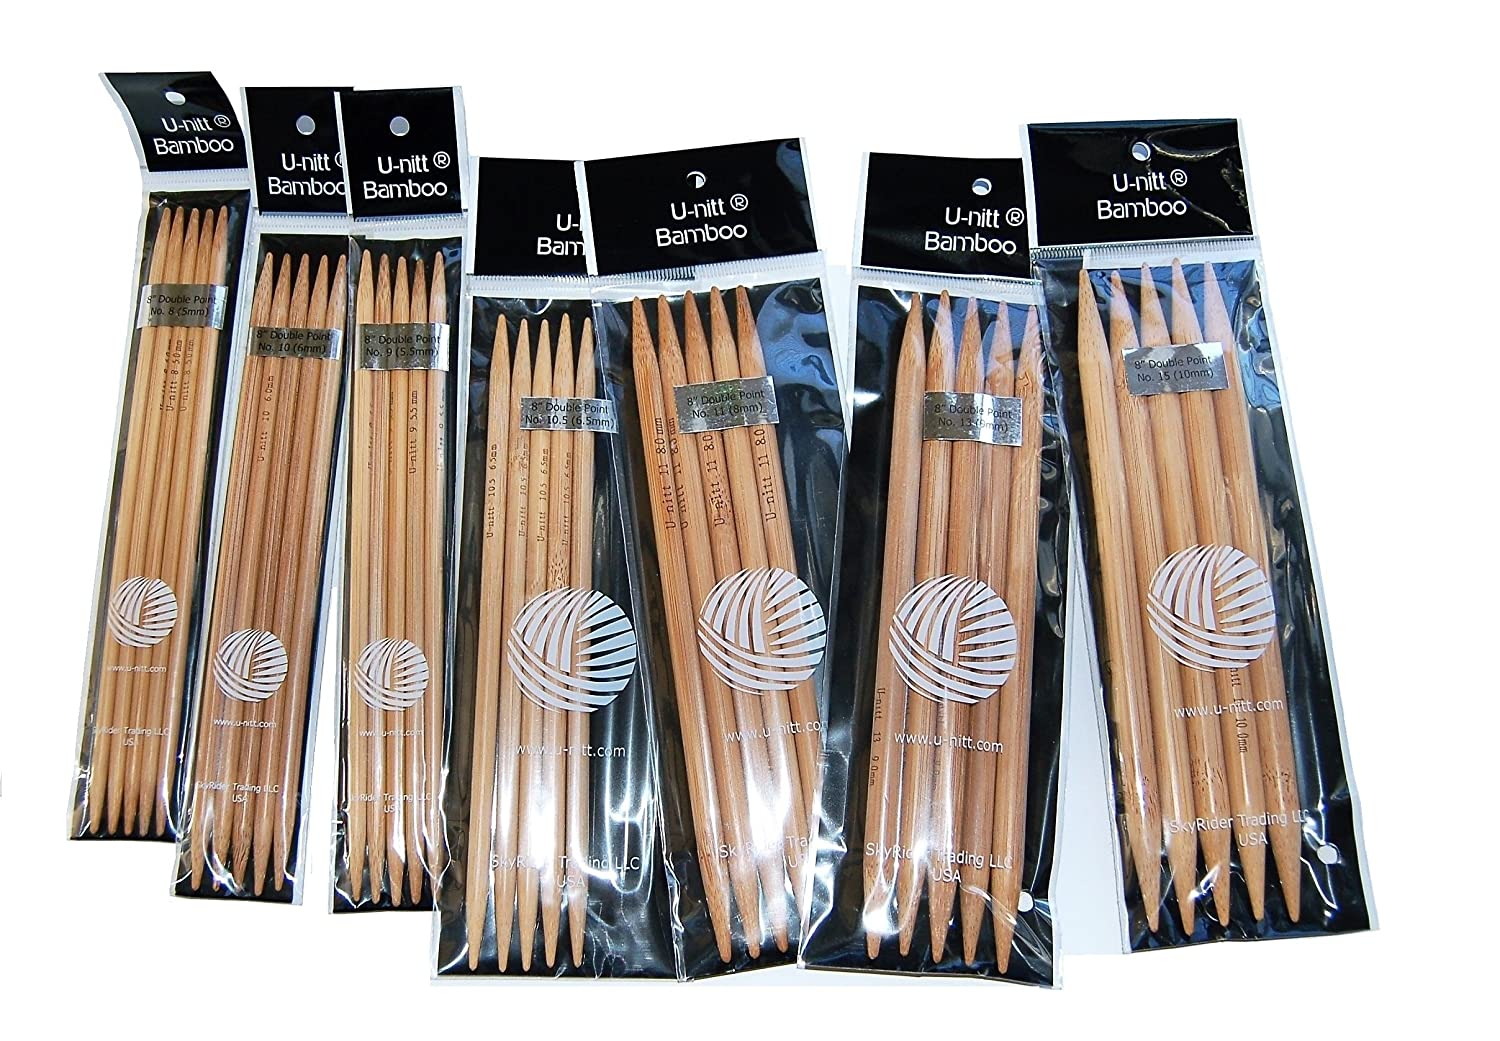 U-nitt Bamboo Knitting Needles Double Point 8 Sz 8, 9, 10, 10.5, 11, 13, 15 : 7-size patina by U-nitt B001QK742U